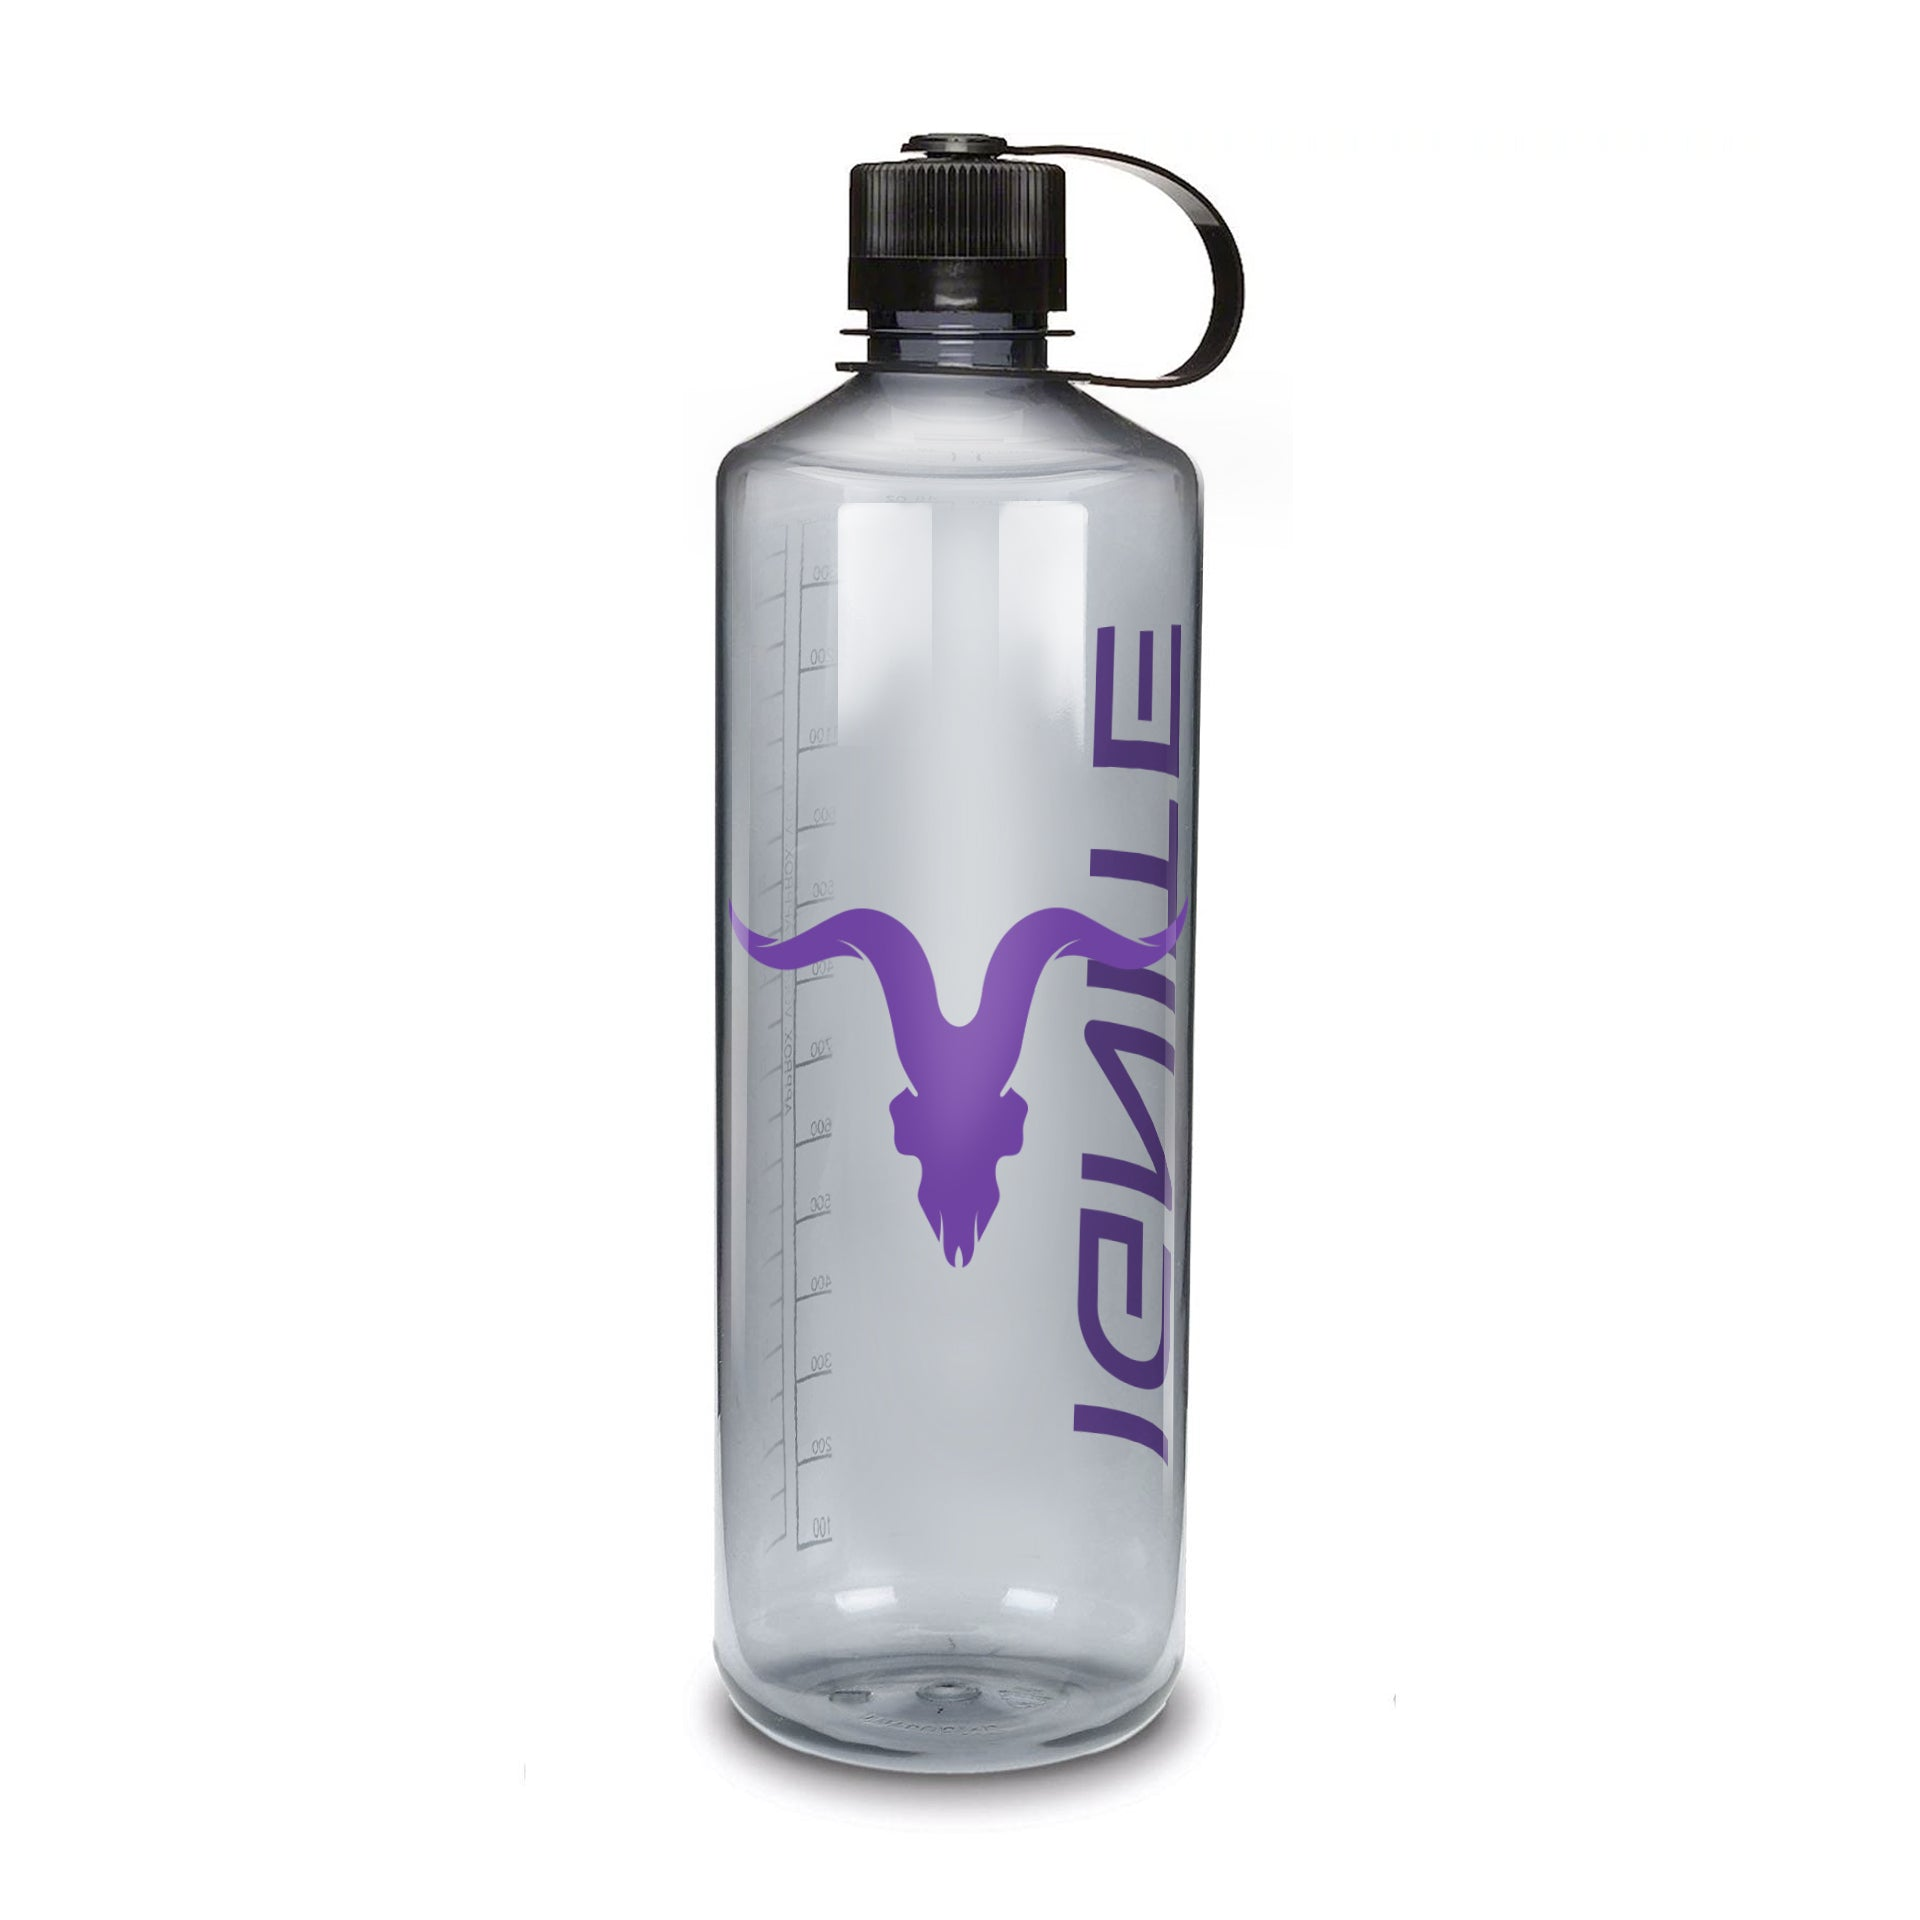 IGNITE PREMIUM 32 oz. Water Bottle with Purple Logo - ignite-merch